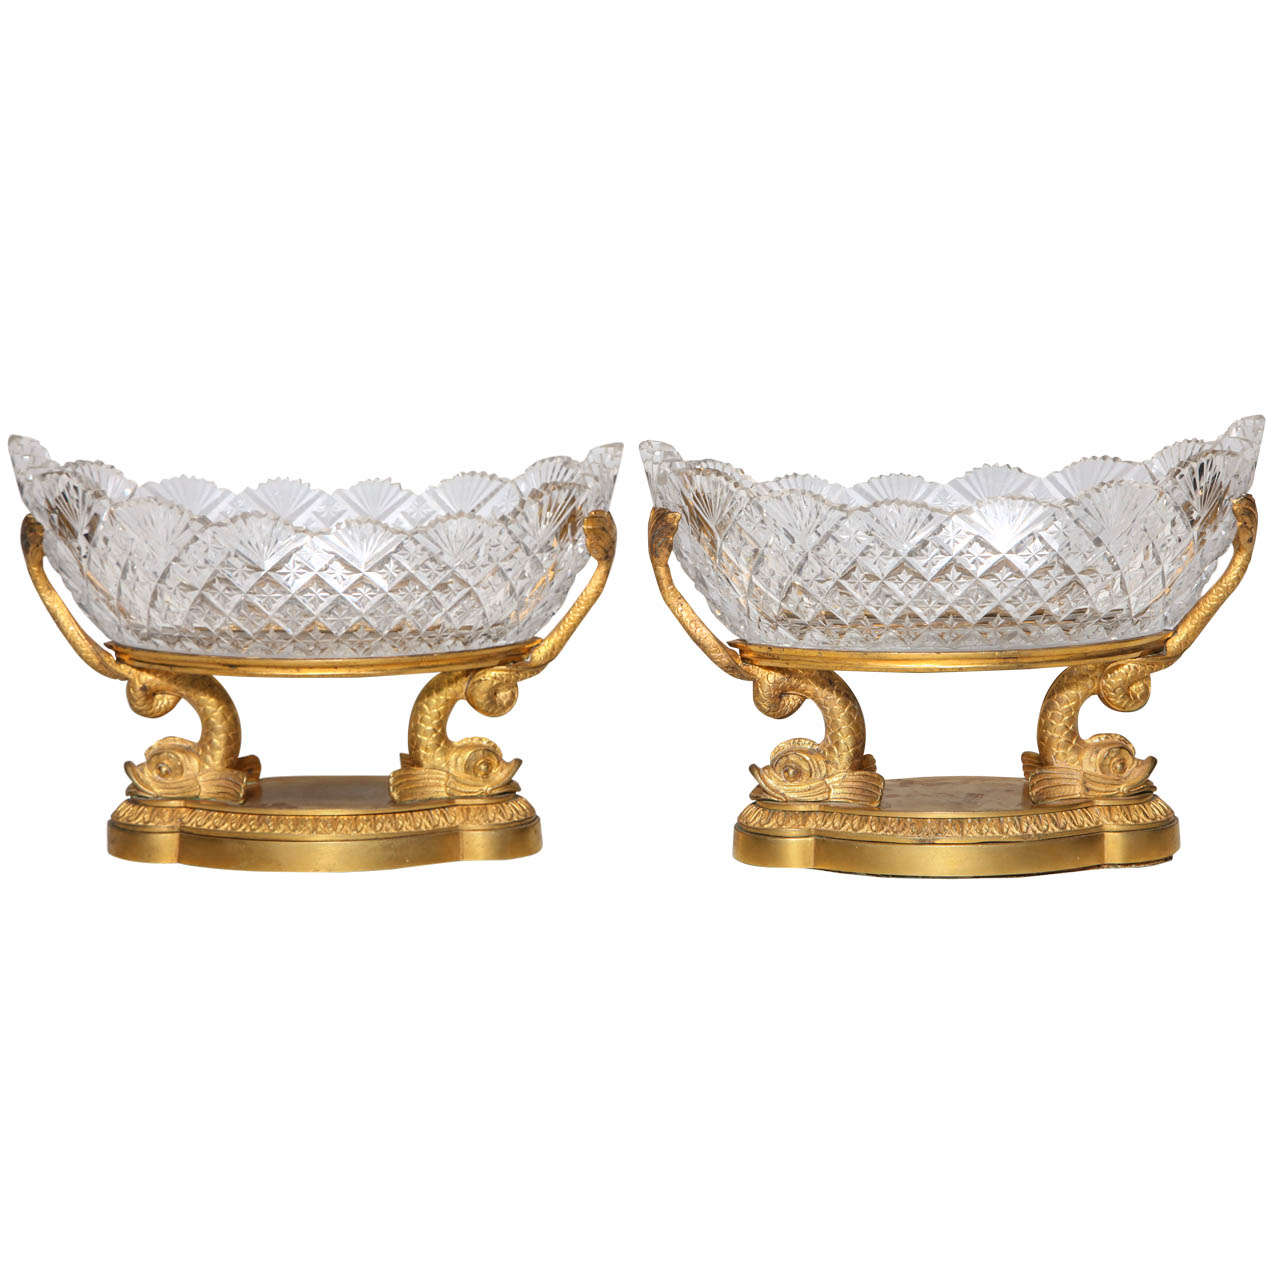 A Rare Pair of Antique Russian Crystal and Dore Bronze dolphin Centerpieces